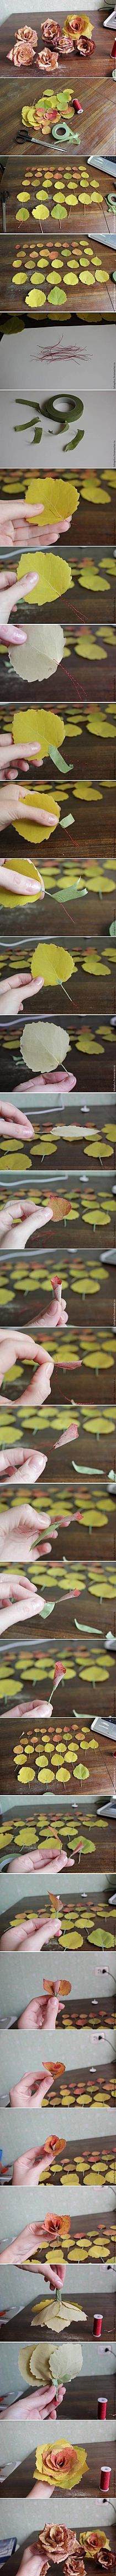 DIY Golden Autumn Rose DIY Golden Autumn Rose -- its too late now to collect fall flowers, but this is such a good idea in general! Diy Home Crafts, Cute Crafts, Diy Craft Projects, Creative Crafts, Fall Crafts, Fake Flowers, Diy Flowers, Fabric Flowers, Leaf Flowers